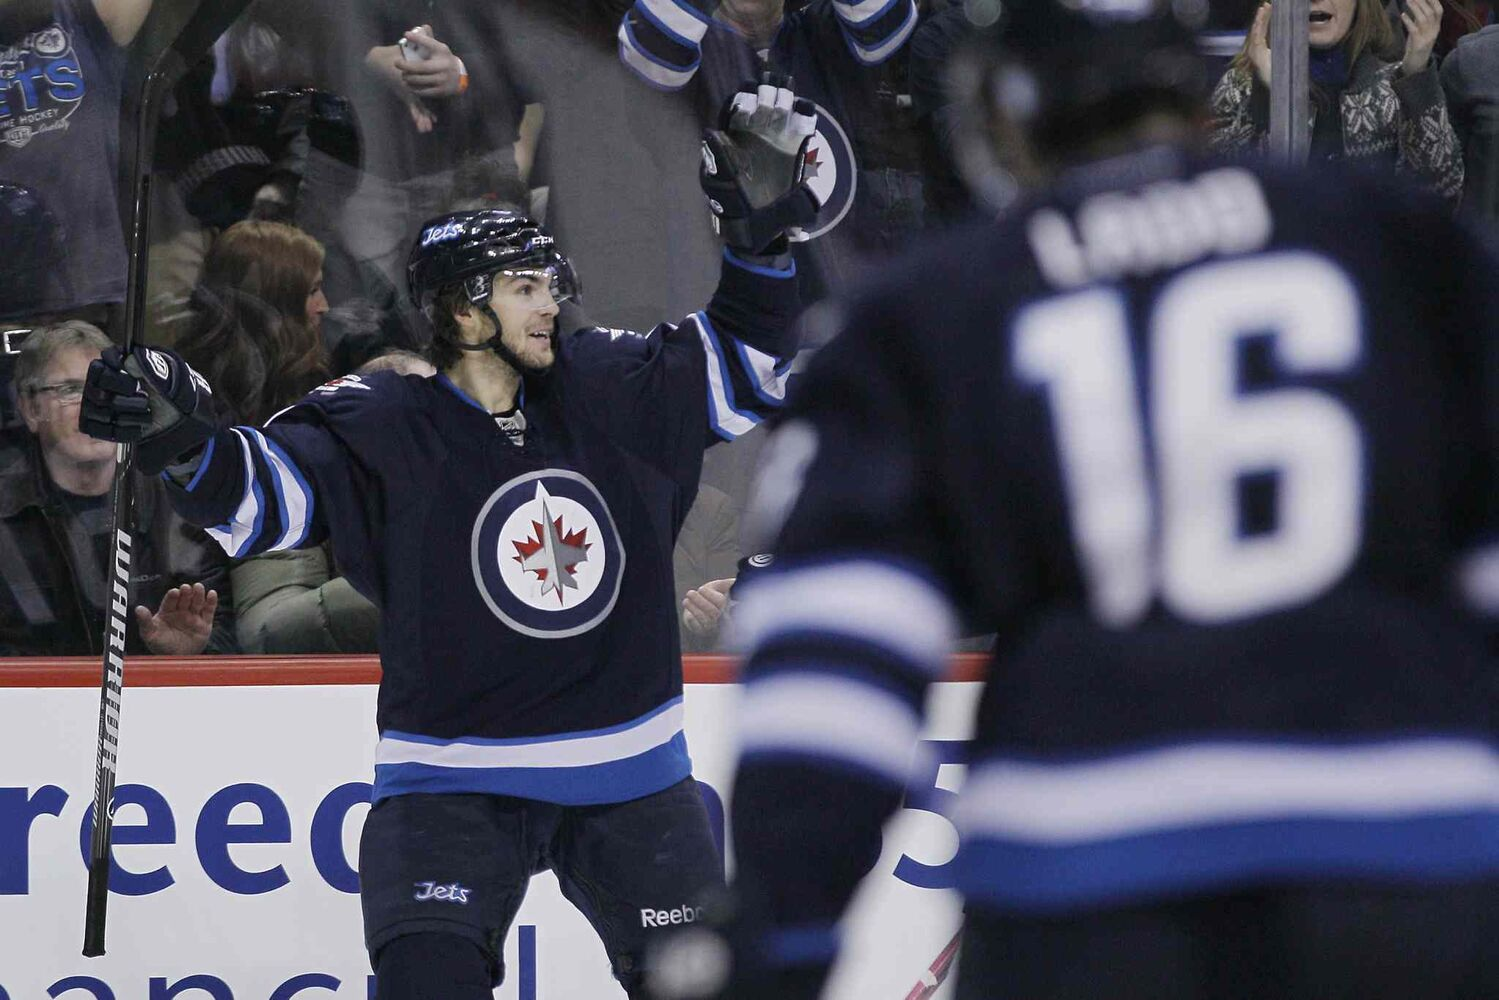 Winnipeg Jets' Michael Frolik (67) celebrates his goal against the Florida Panthers as Andrew Ladd (16) skates by during second period.